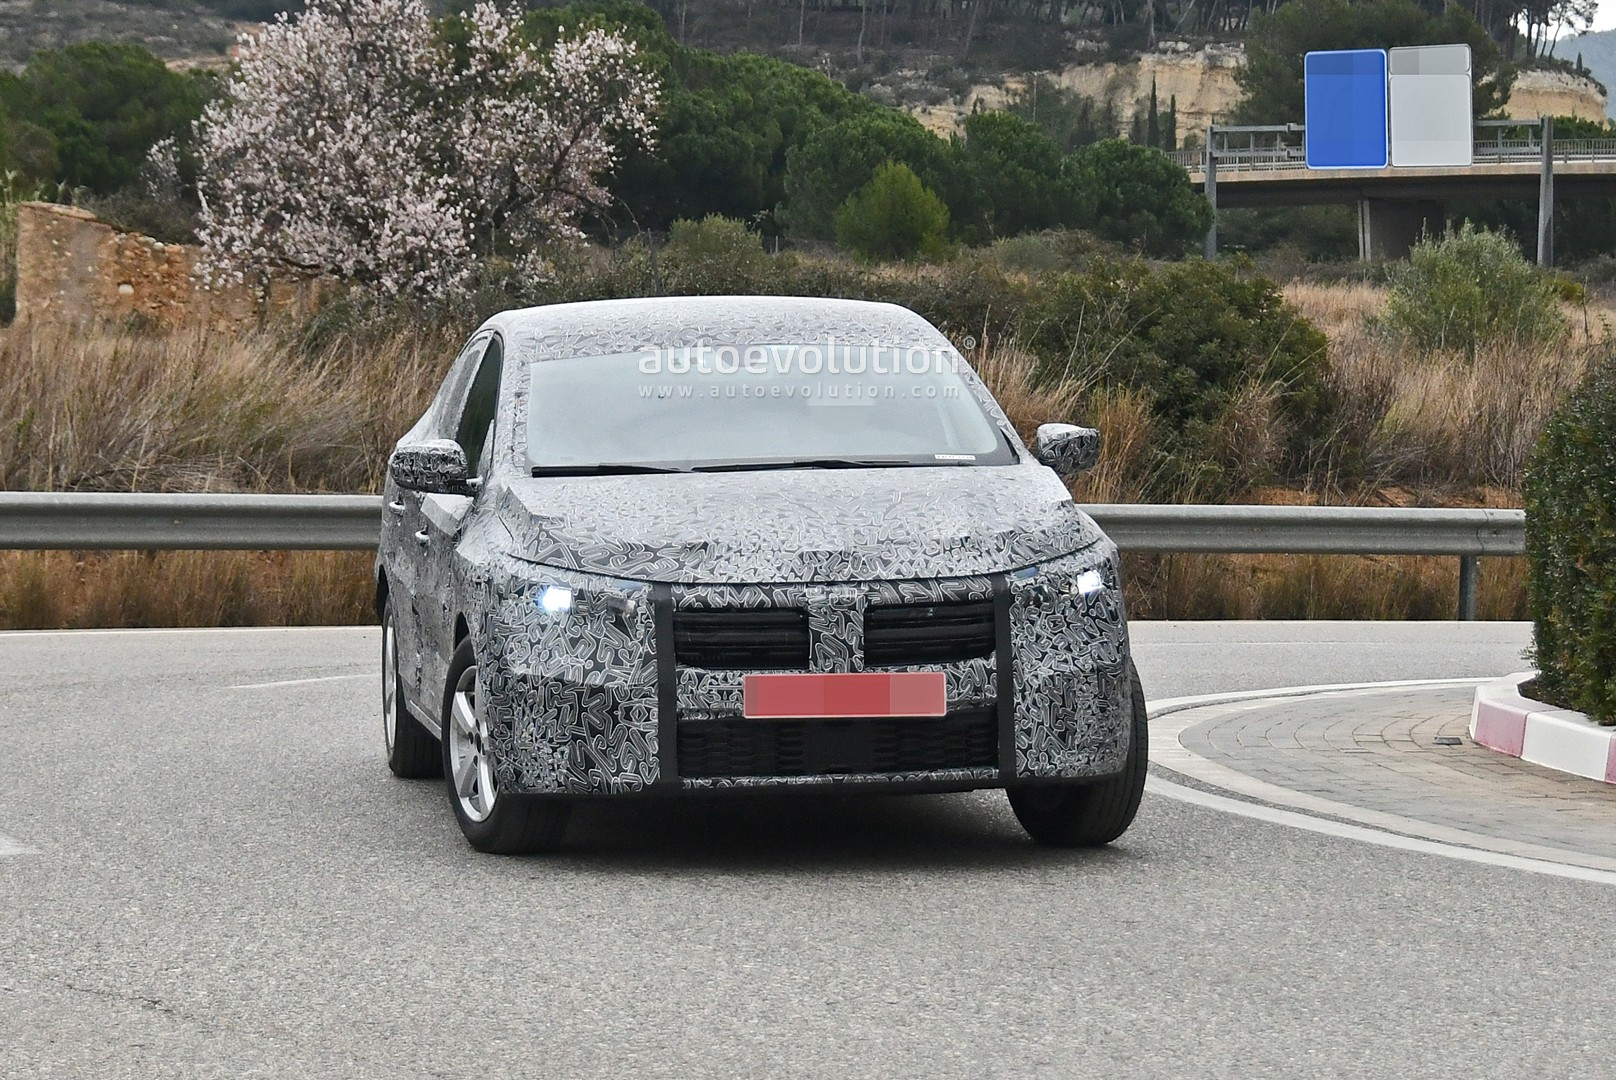 all-new-2021-dacia-logan-spied-with-led-lights-coupe-roof_3